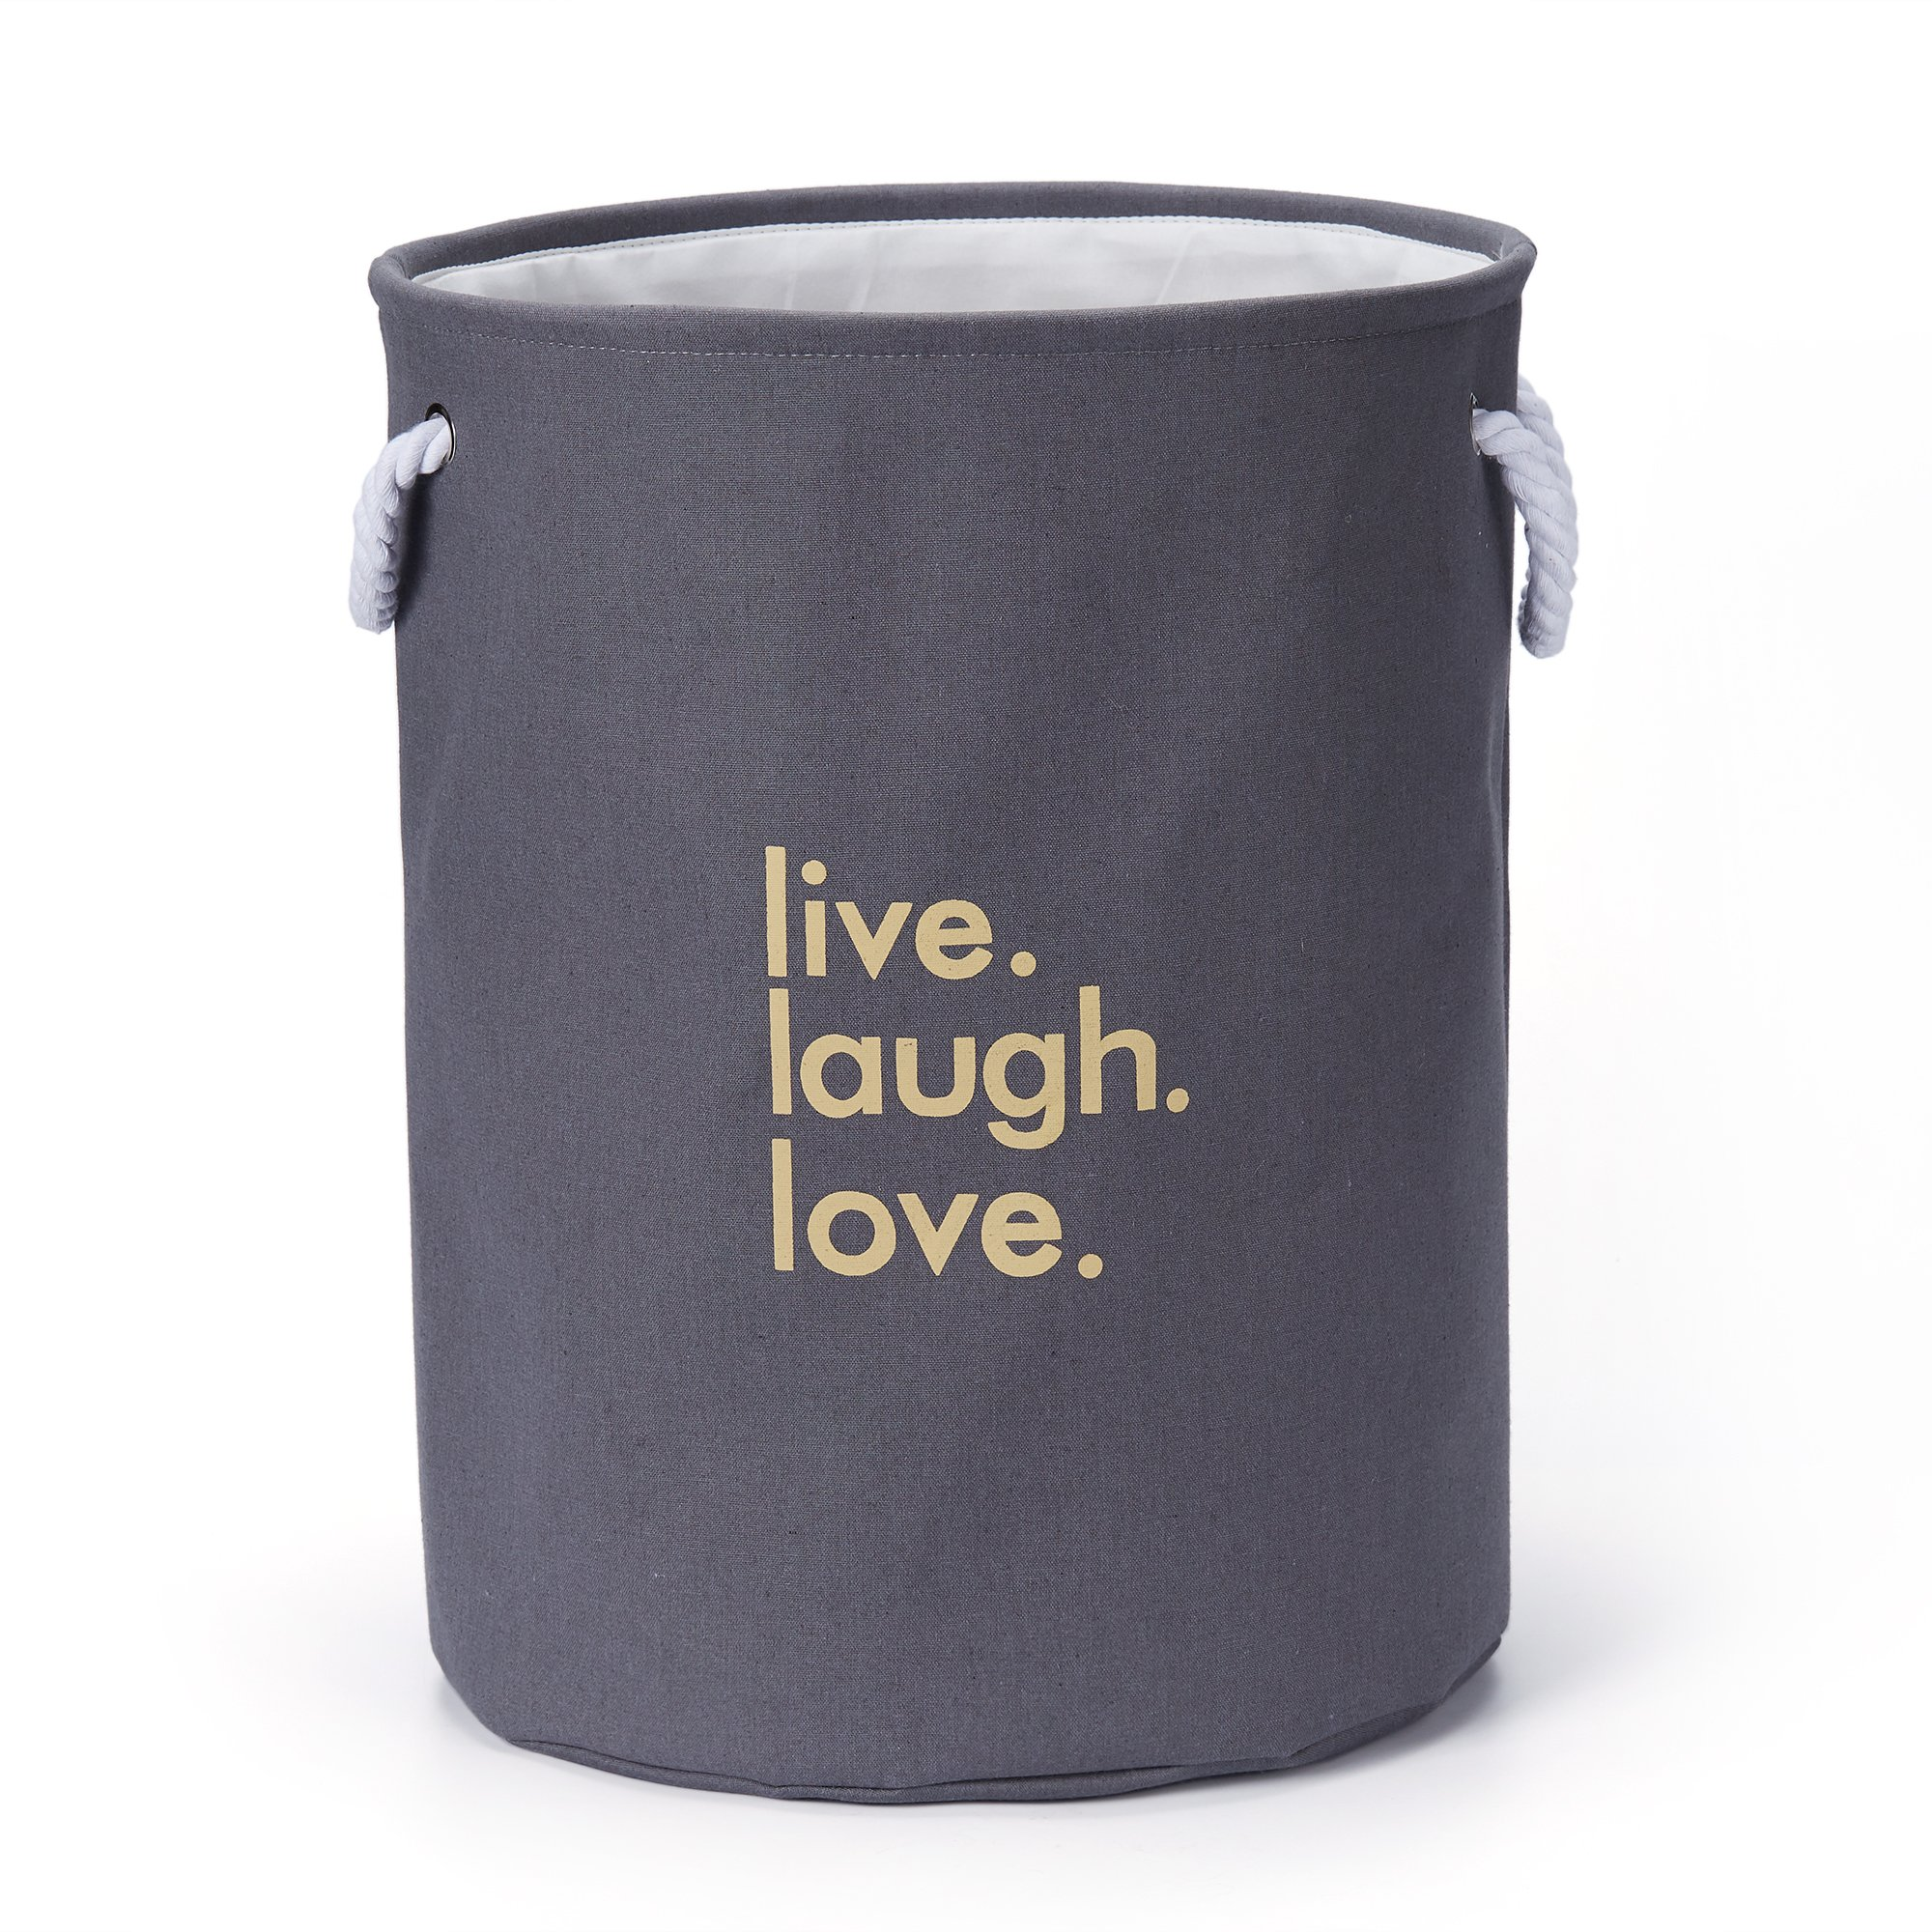 Every Deco Grey Basket for Laundry – Live Laugh Love Clothes Bin Hamper and Kids Toy Bin Storage